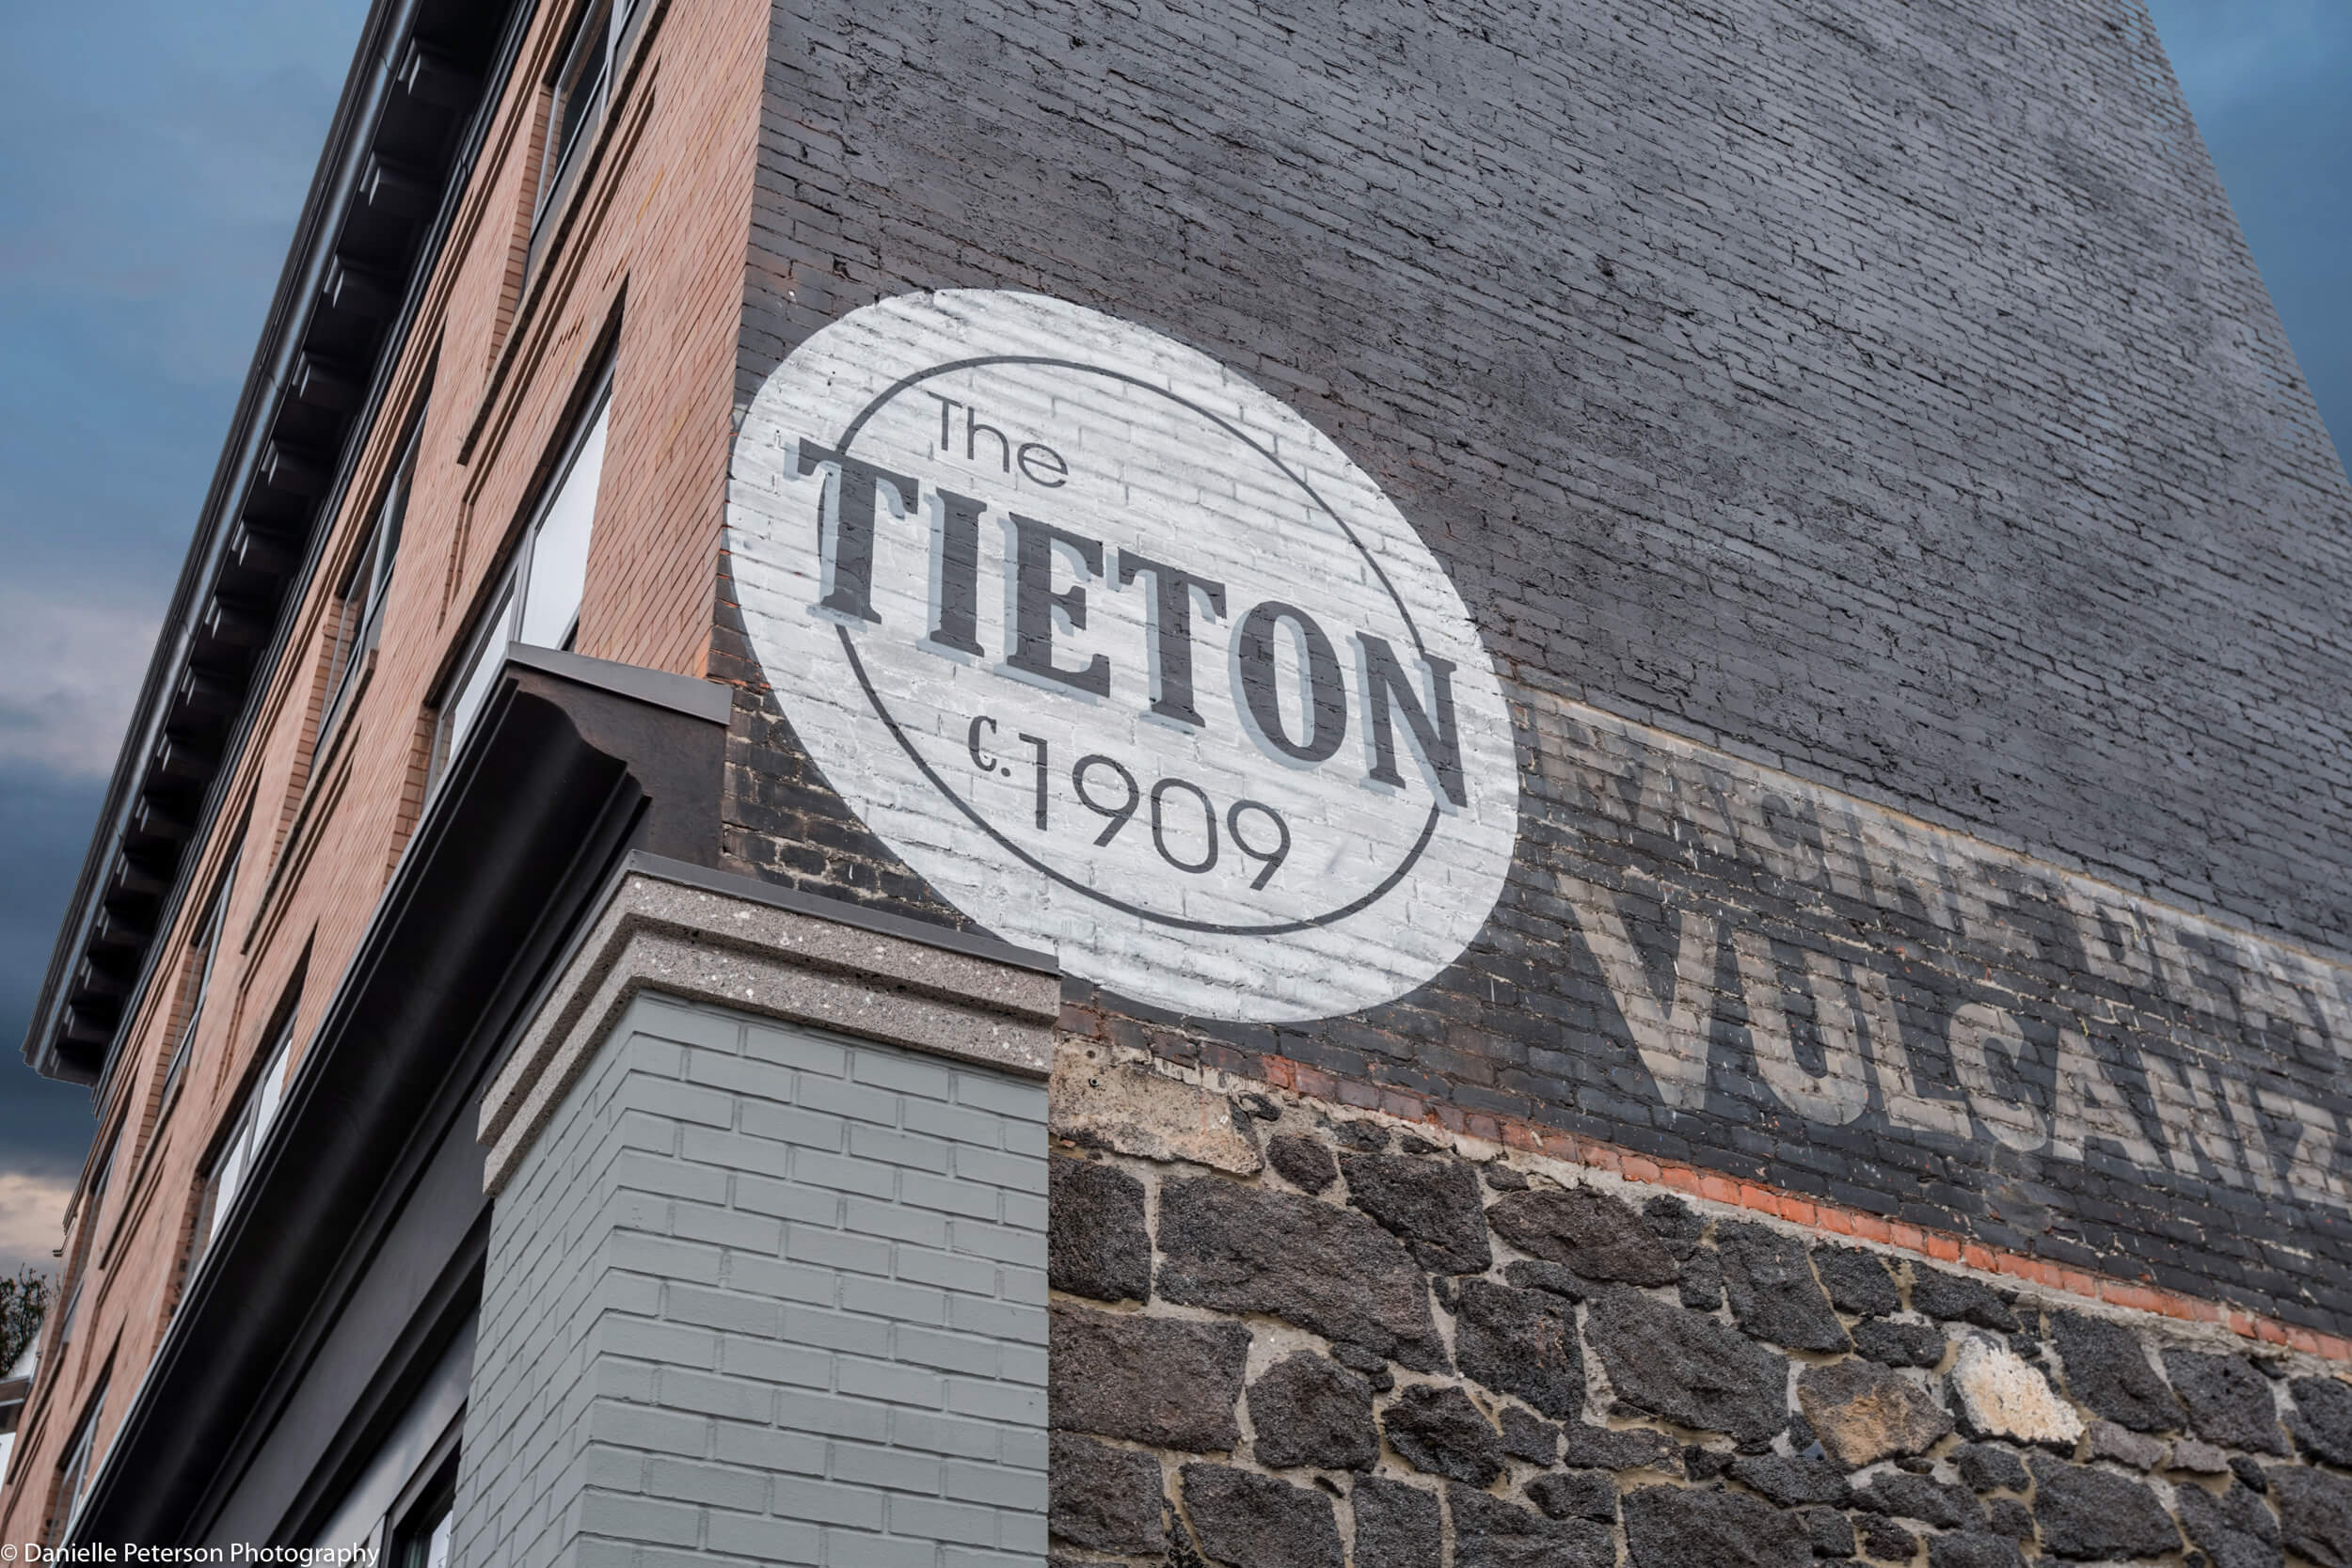 The Tieton sign